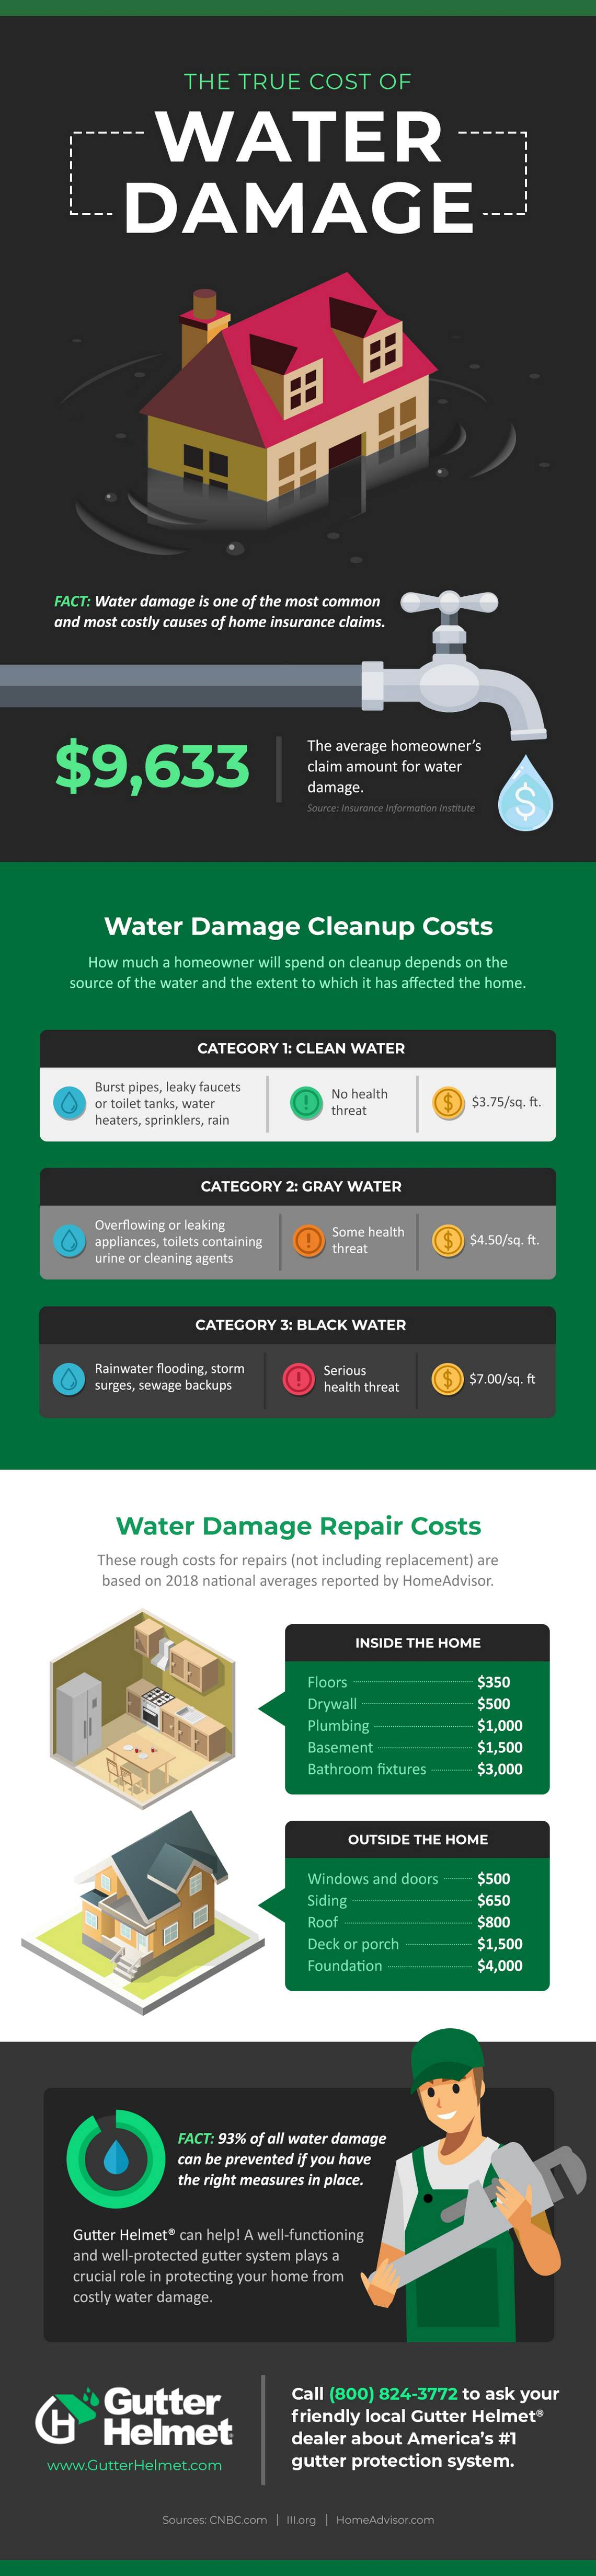 Infographic: The True Cost of Water Damage